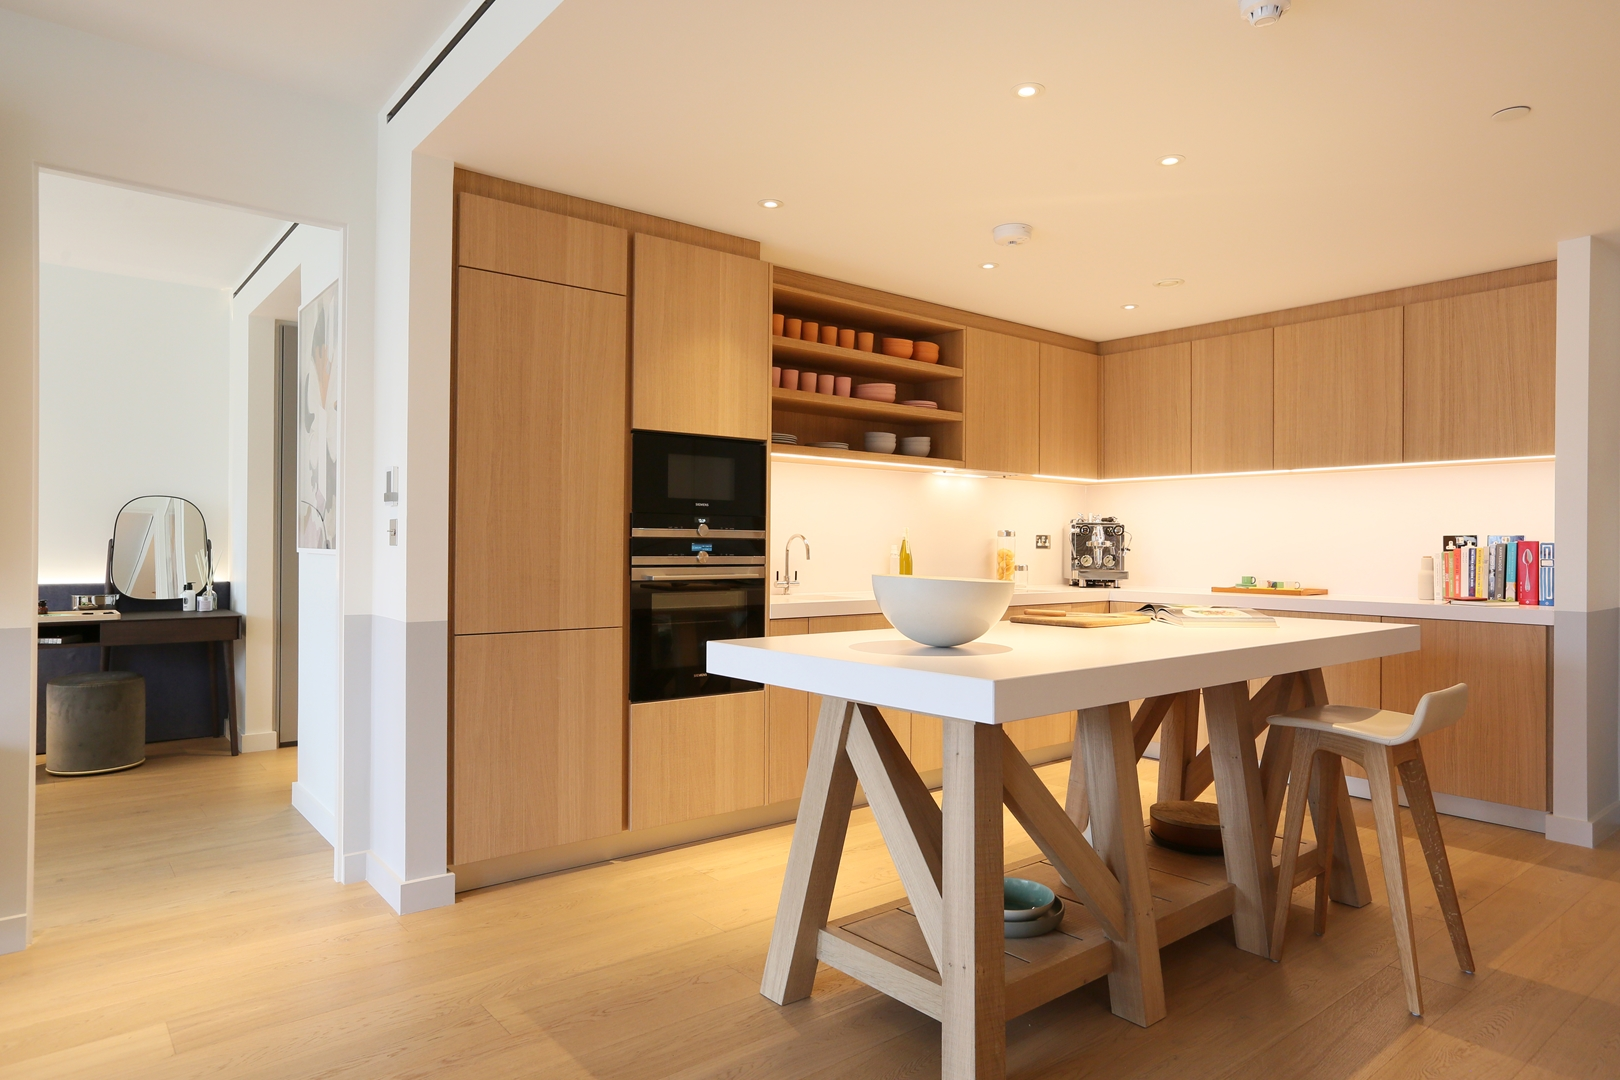 Gehry show apartment kitchen at Battersea Power Station (Copy)